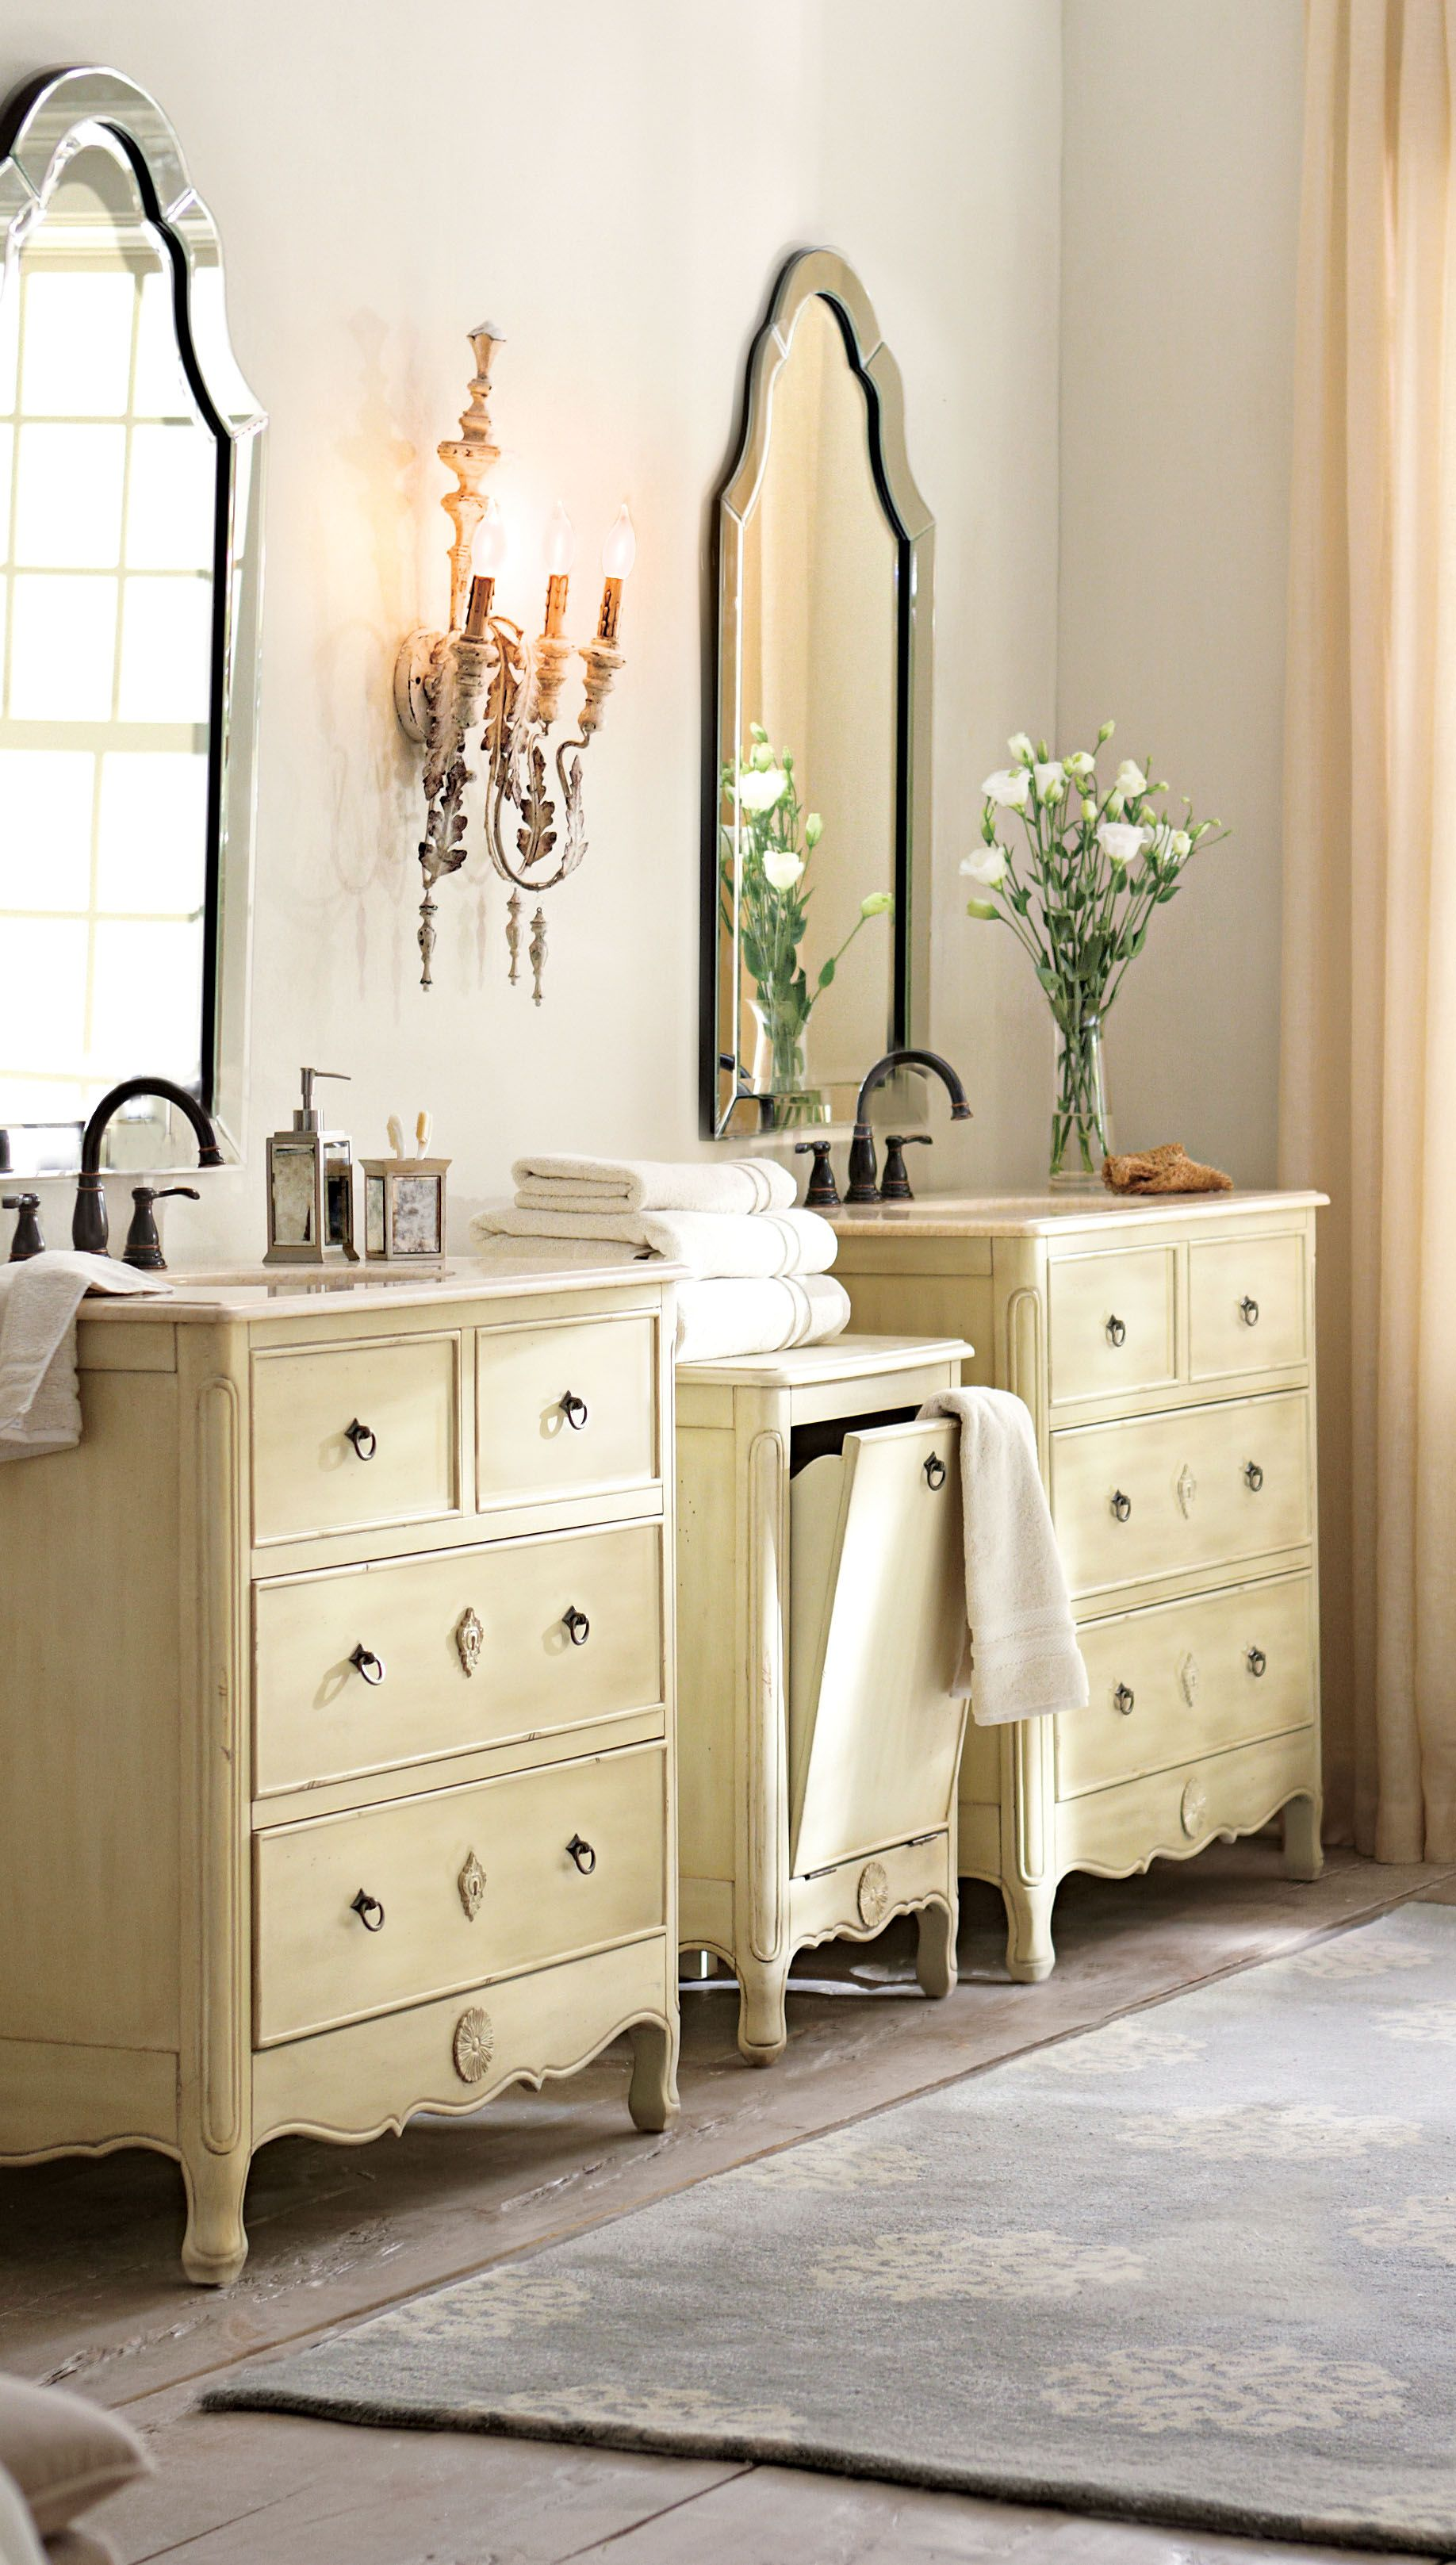 Instead Of The Usual Double Bath Vanity Try Two Single Bath